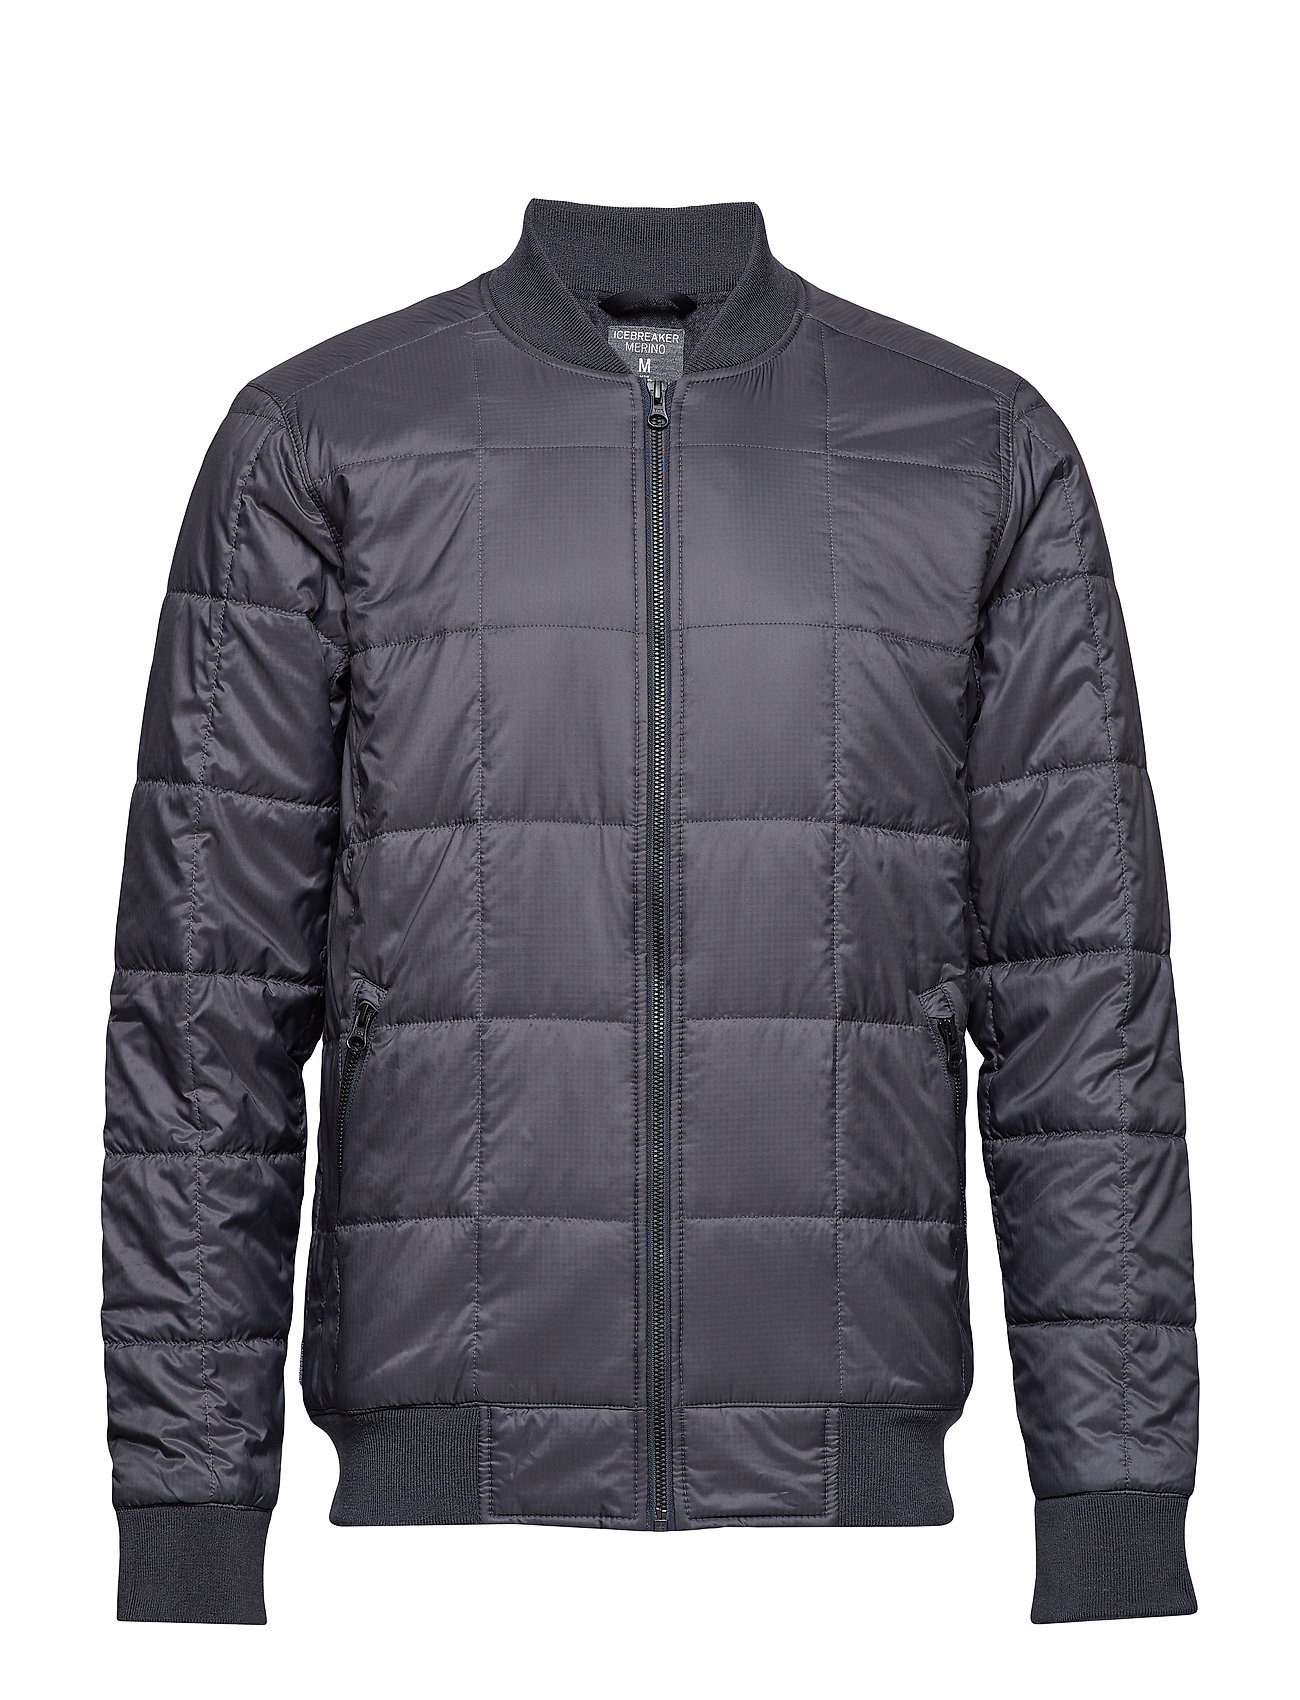 Icebreaker Mens Venturous Jacket - MONSOON/JET HTHR